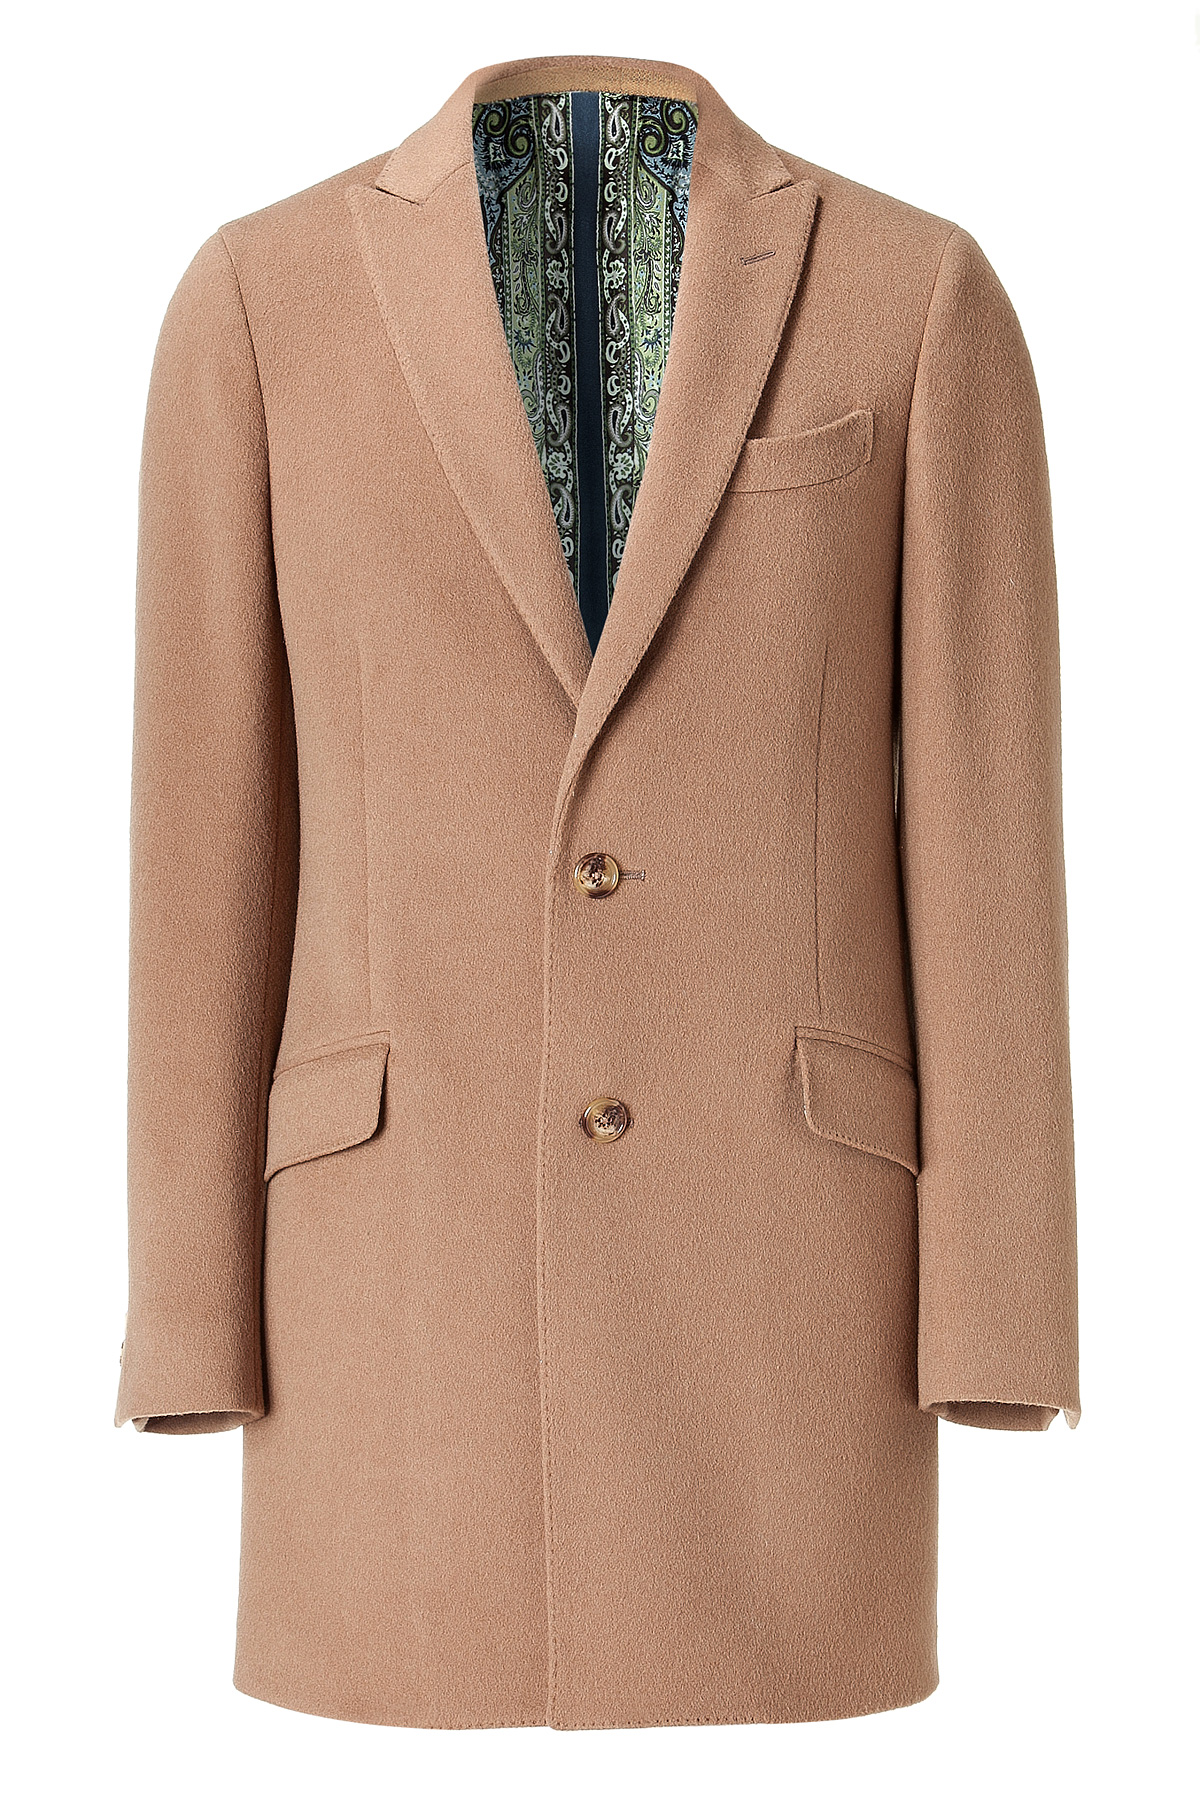 Men's Wool Coats come in a variety of different designs. Find your favorites, such as Hooded Men's Wool Coats and Zipper Detail Men's Wool Coats when you shop at Macy's. Mens Wool Coats. A must-have in any guy's winter wardrobe? A wool coat! Slip one on for instant style and warmth.